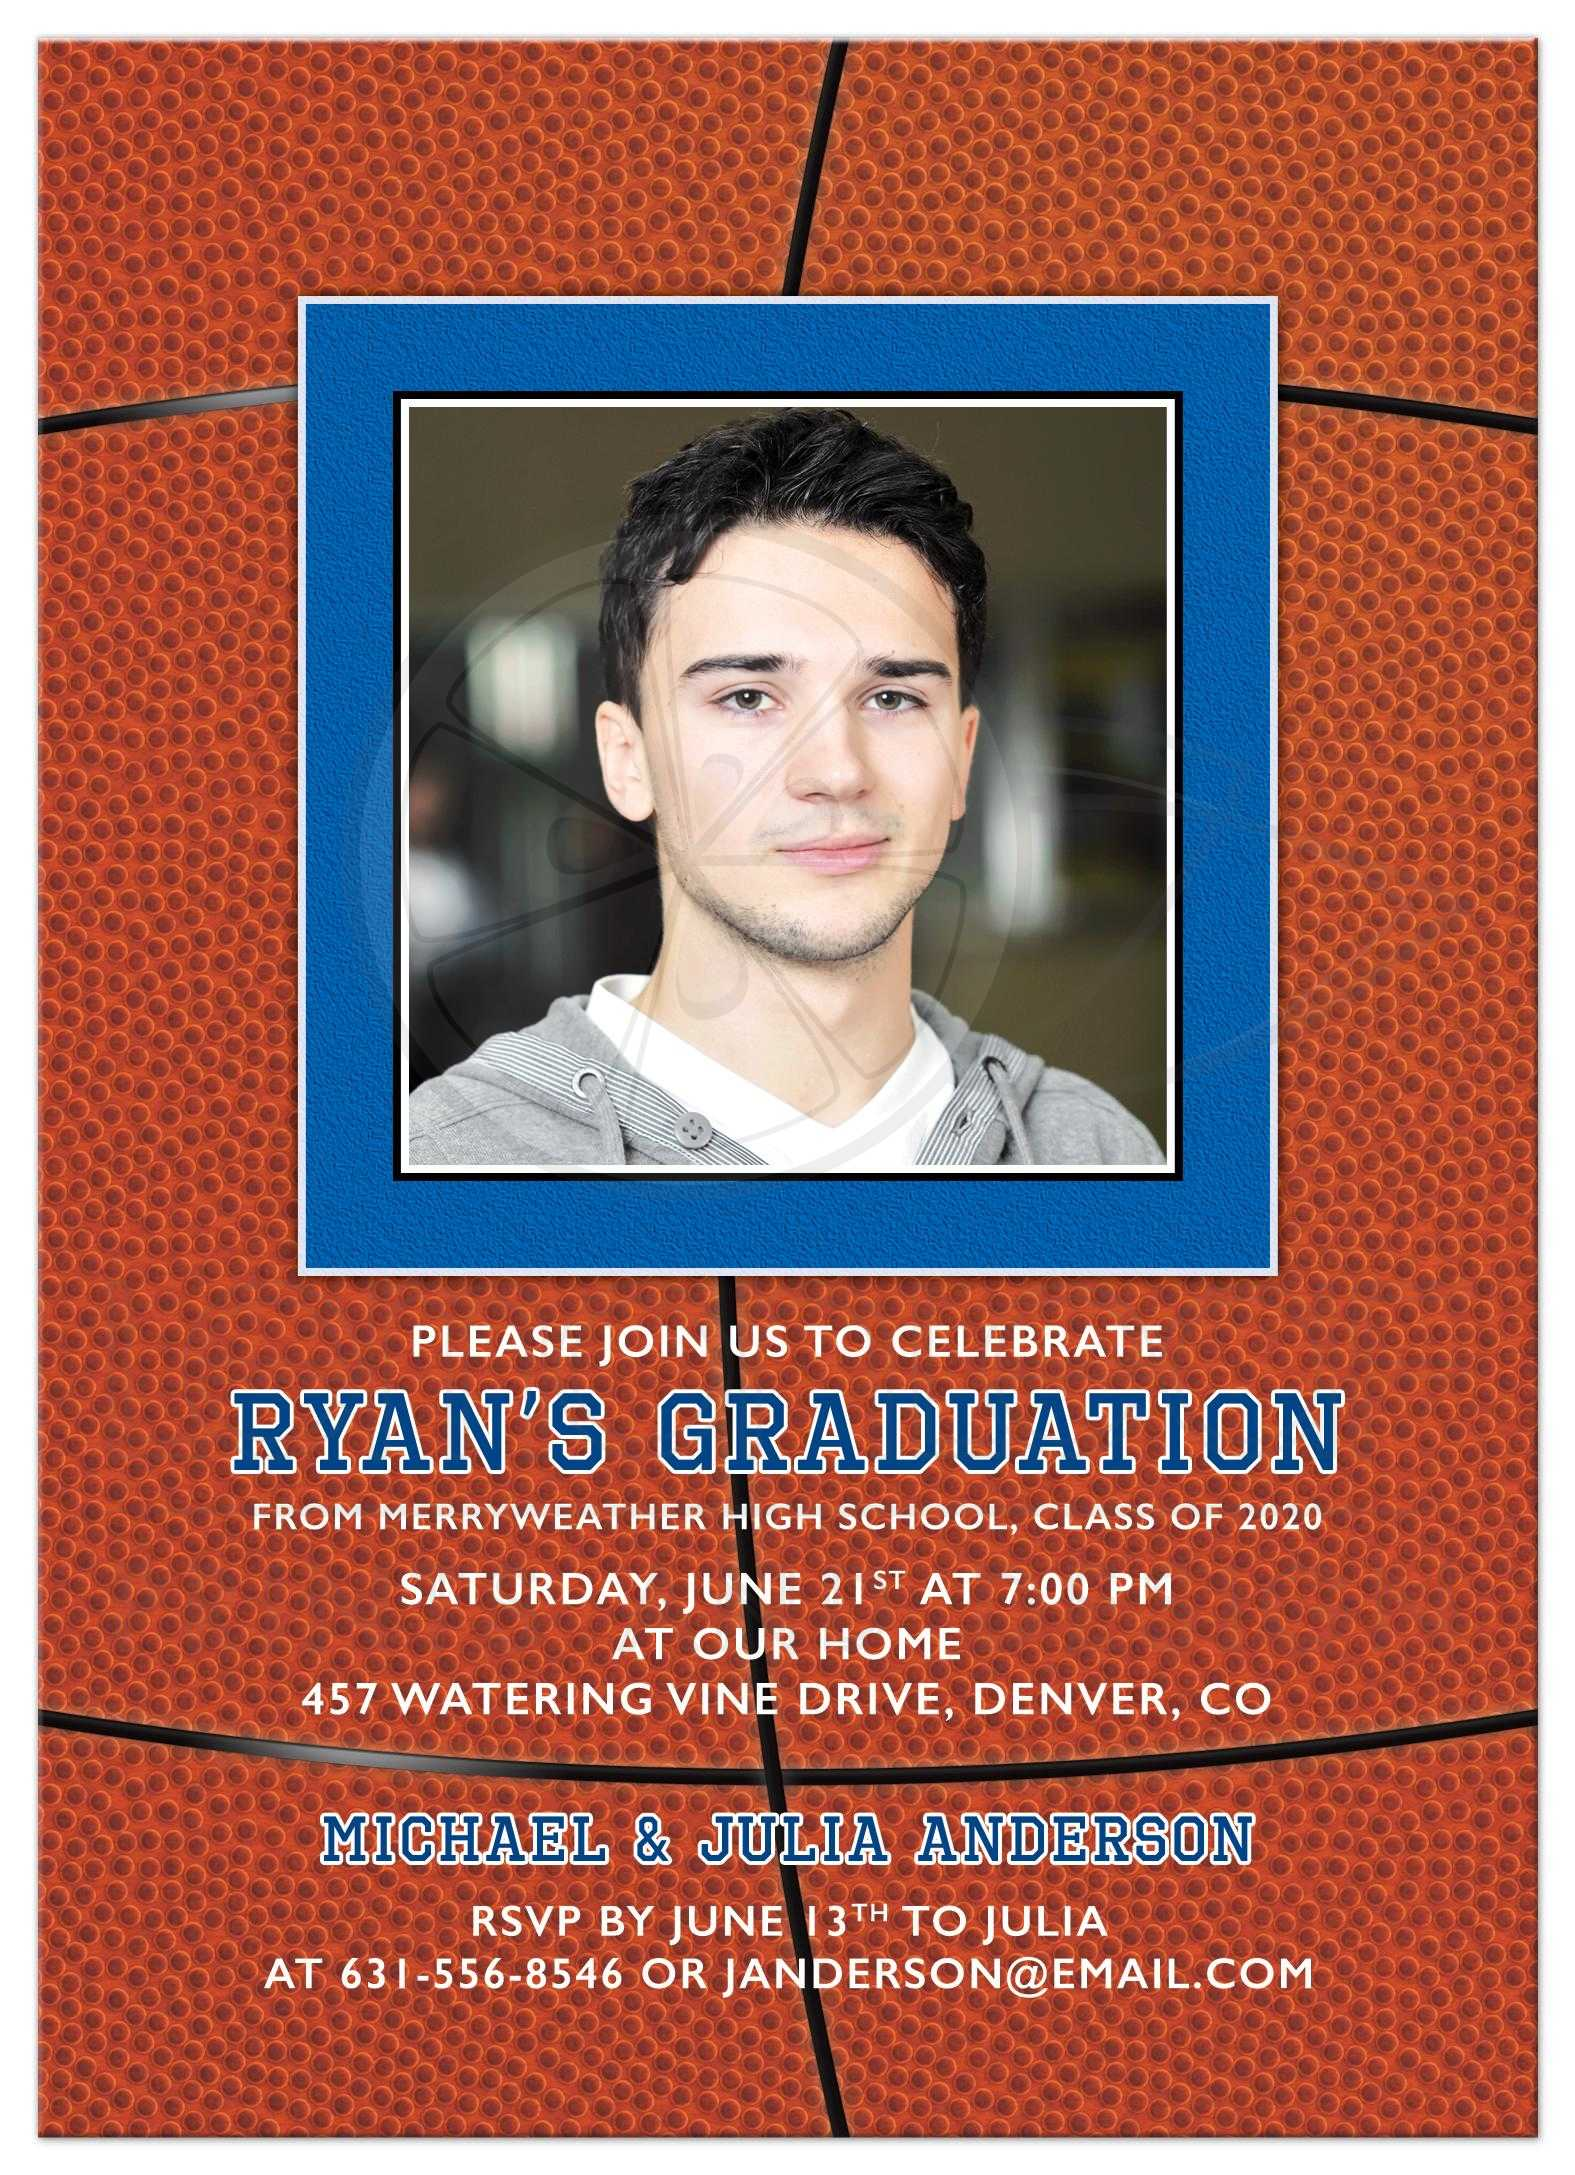 High School Graduation Announcements 2020.Basketball Photo Graduation Party Invitation Orange Blue